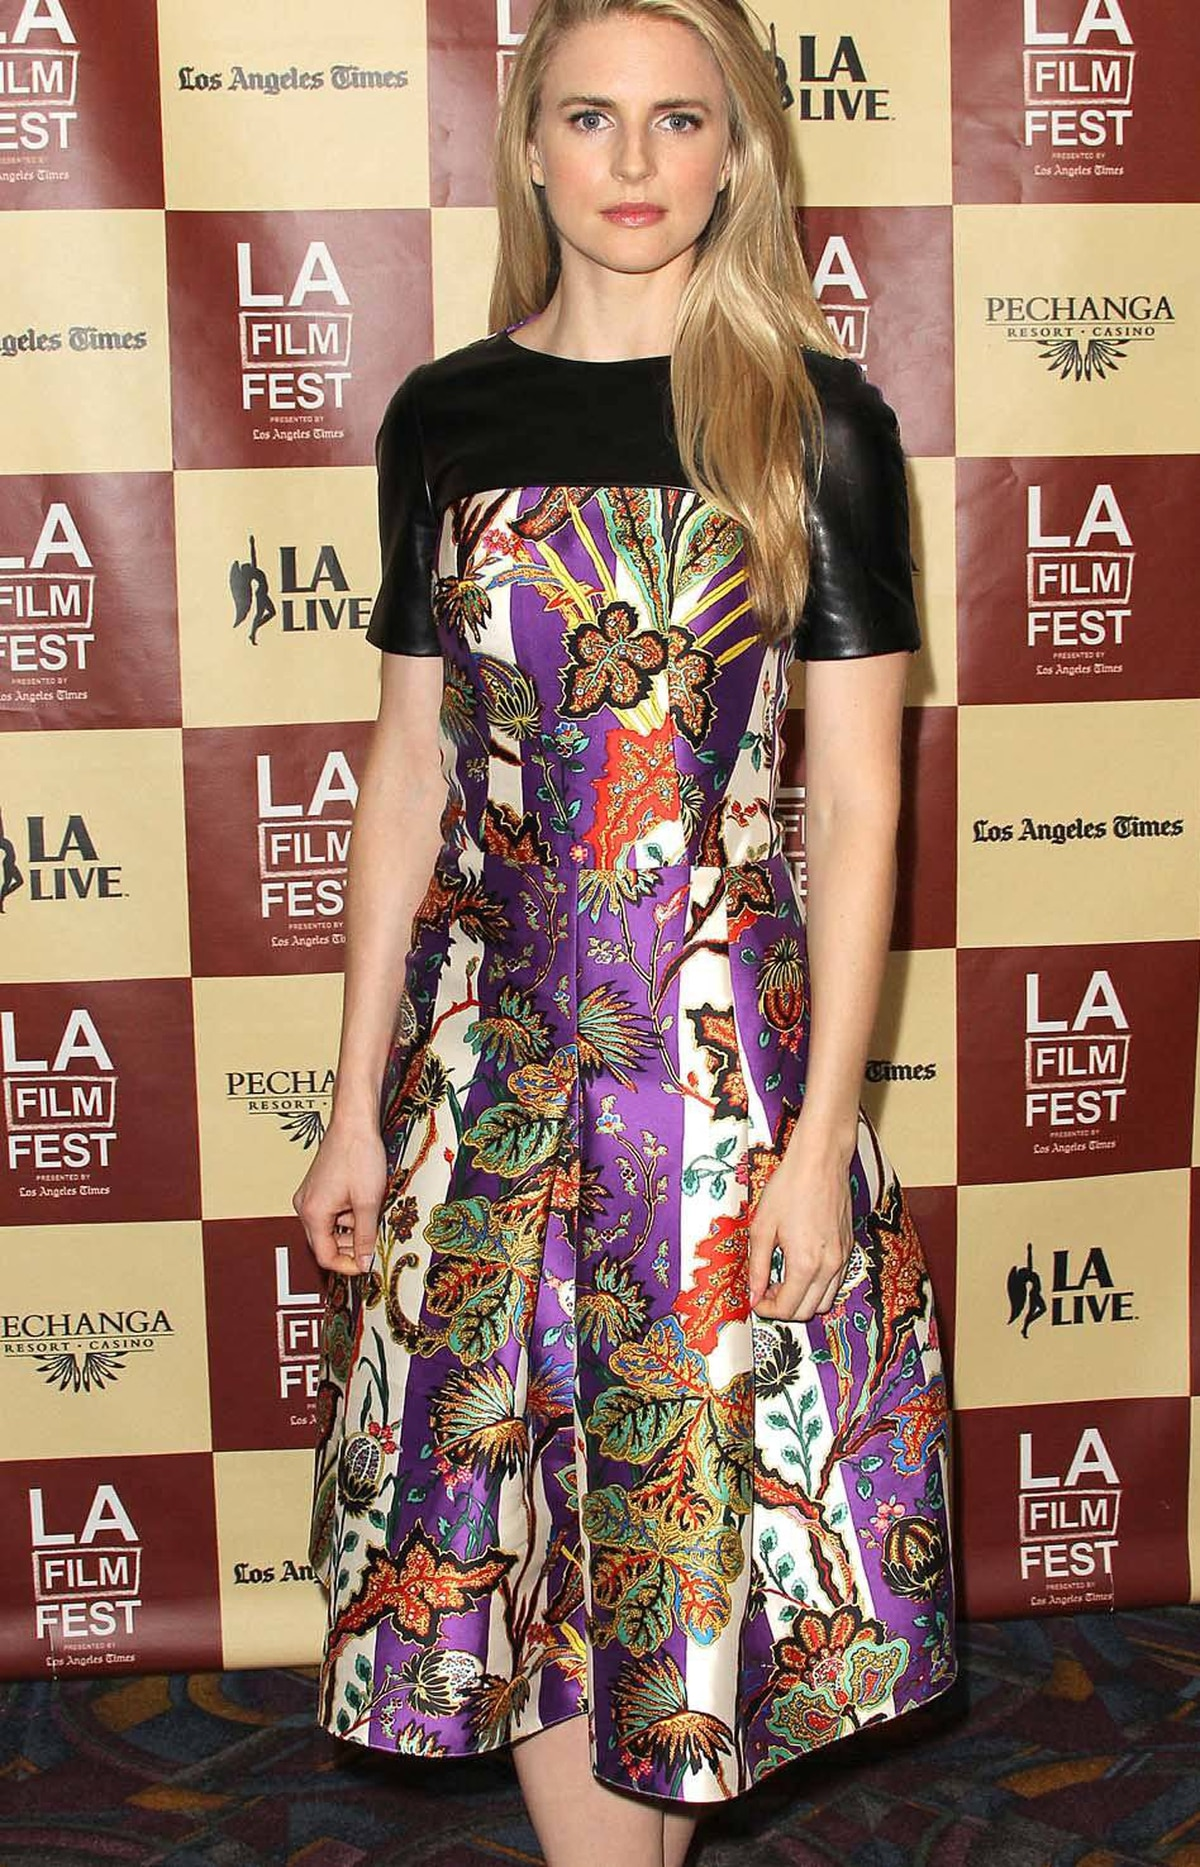 """Actress/producer/co-writer Brit Marling attends the Los Angeles Film Festival Screening of """"Another Earth"""" at the Regal Cinemas L.A. Live on June 23, 2011 in Los Angeles, California."""